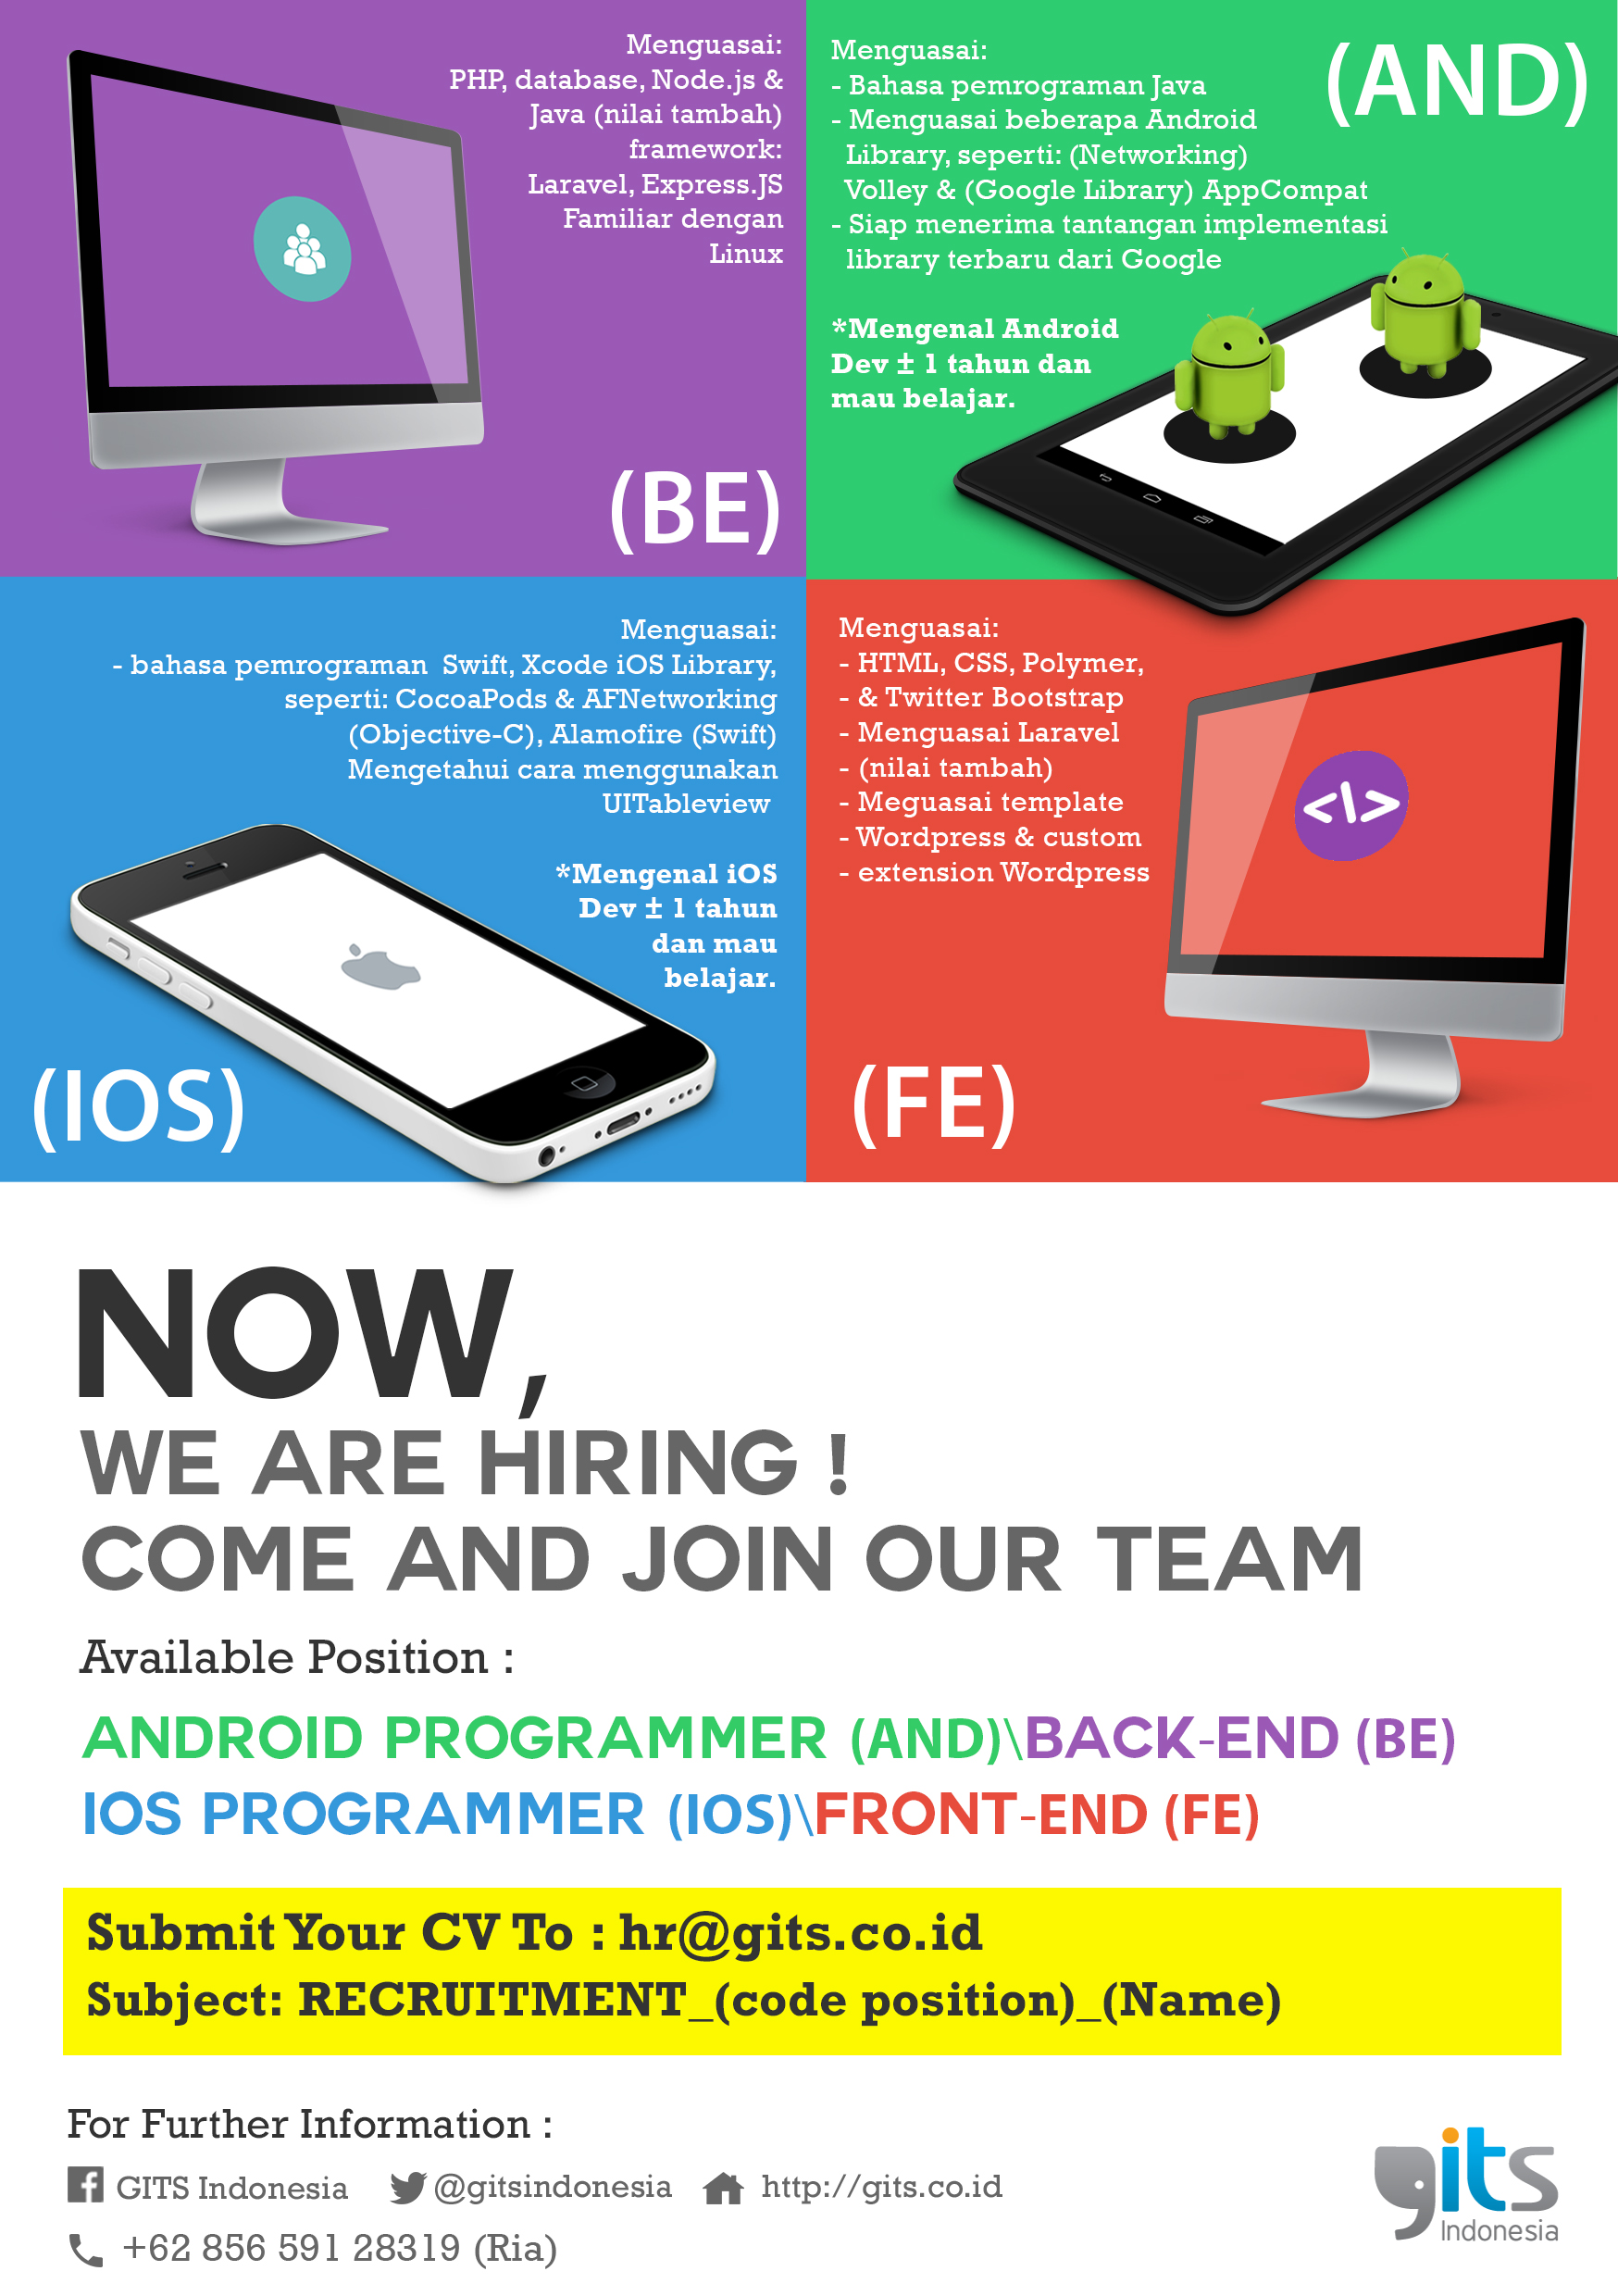 gits-indonesia-open-recruitment.jpg